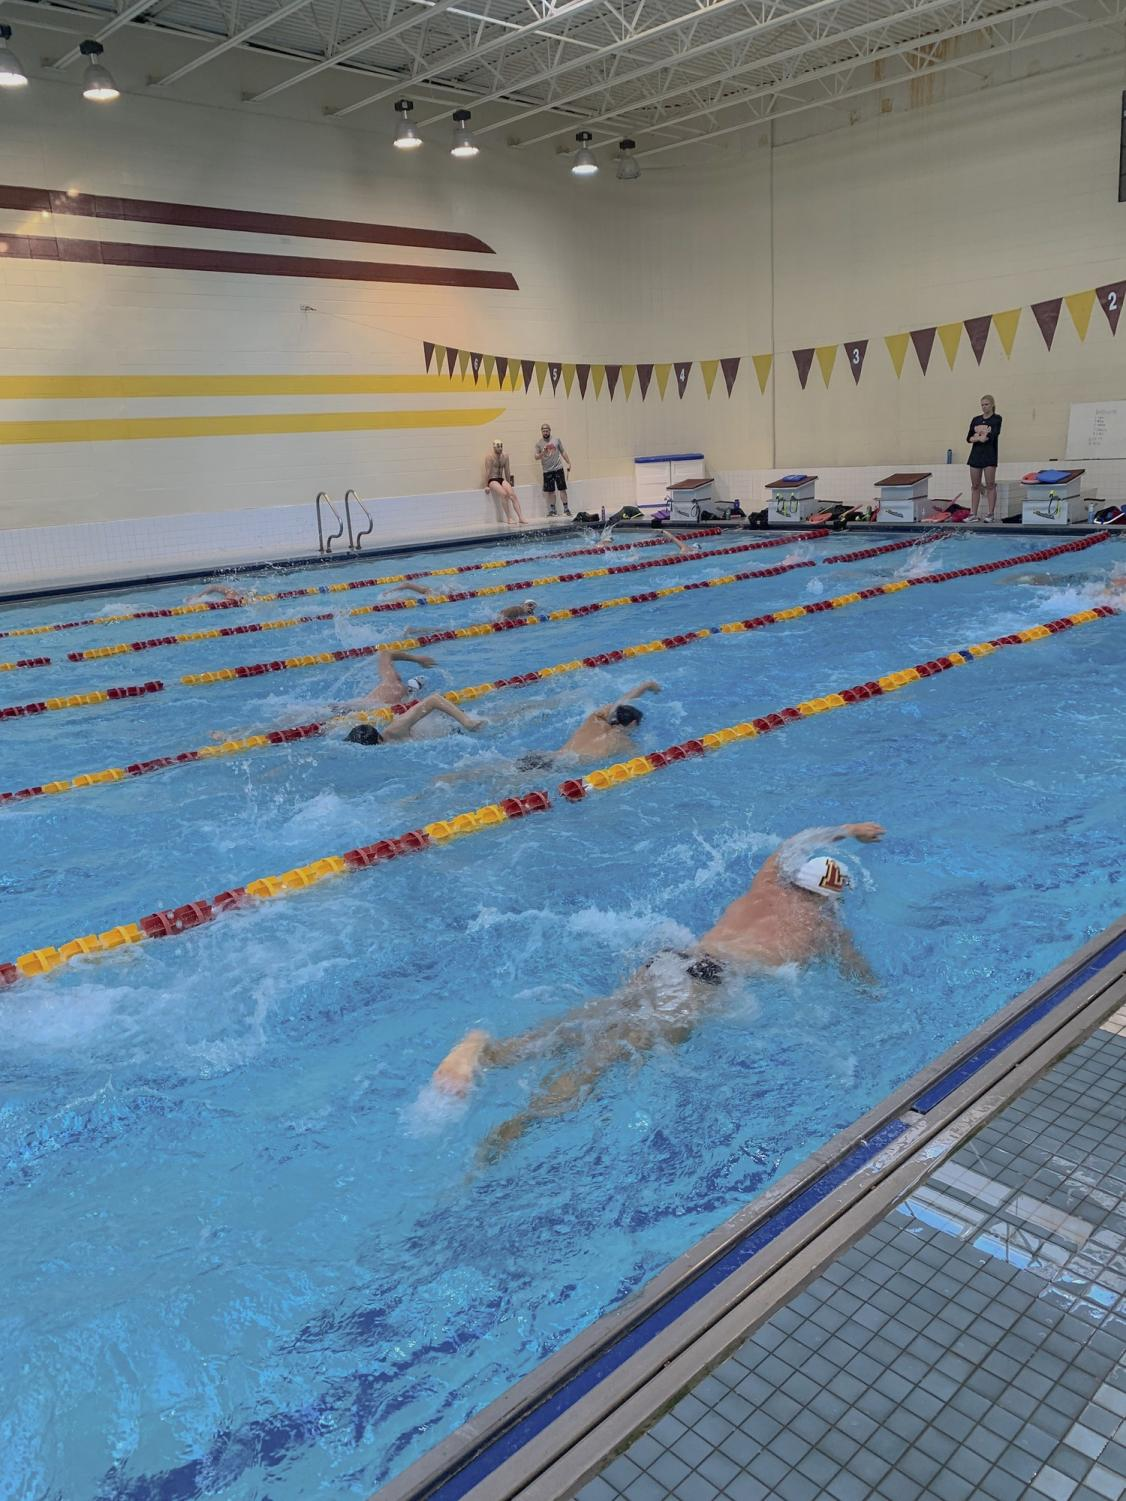 Both the men's and women's swim teams practice early in the morning during the week.  They are preparing for their next meet in San Antonio on Nov. 21, 2019. Photo credit: Courtesy of Parker Elliott